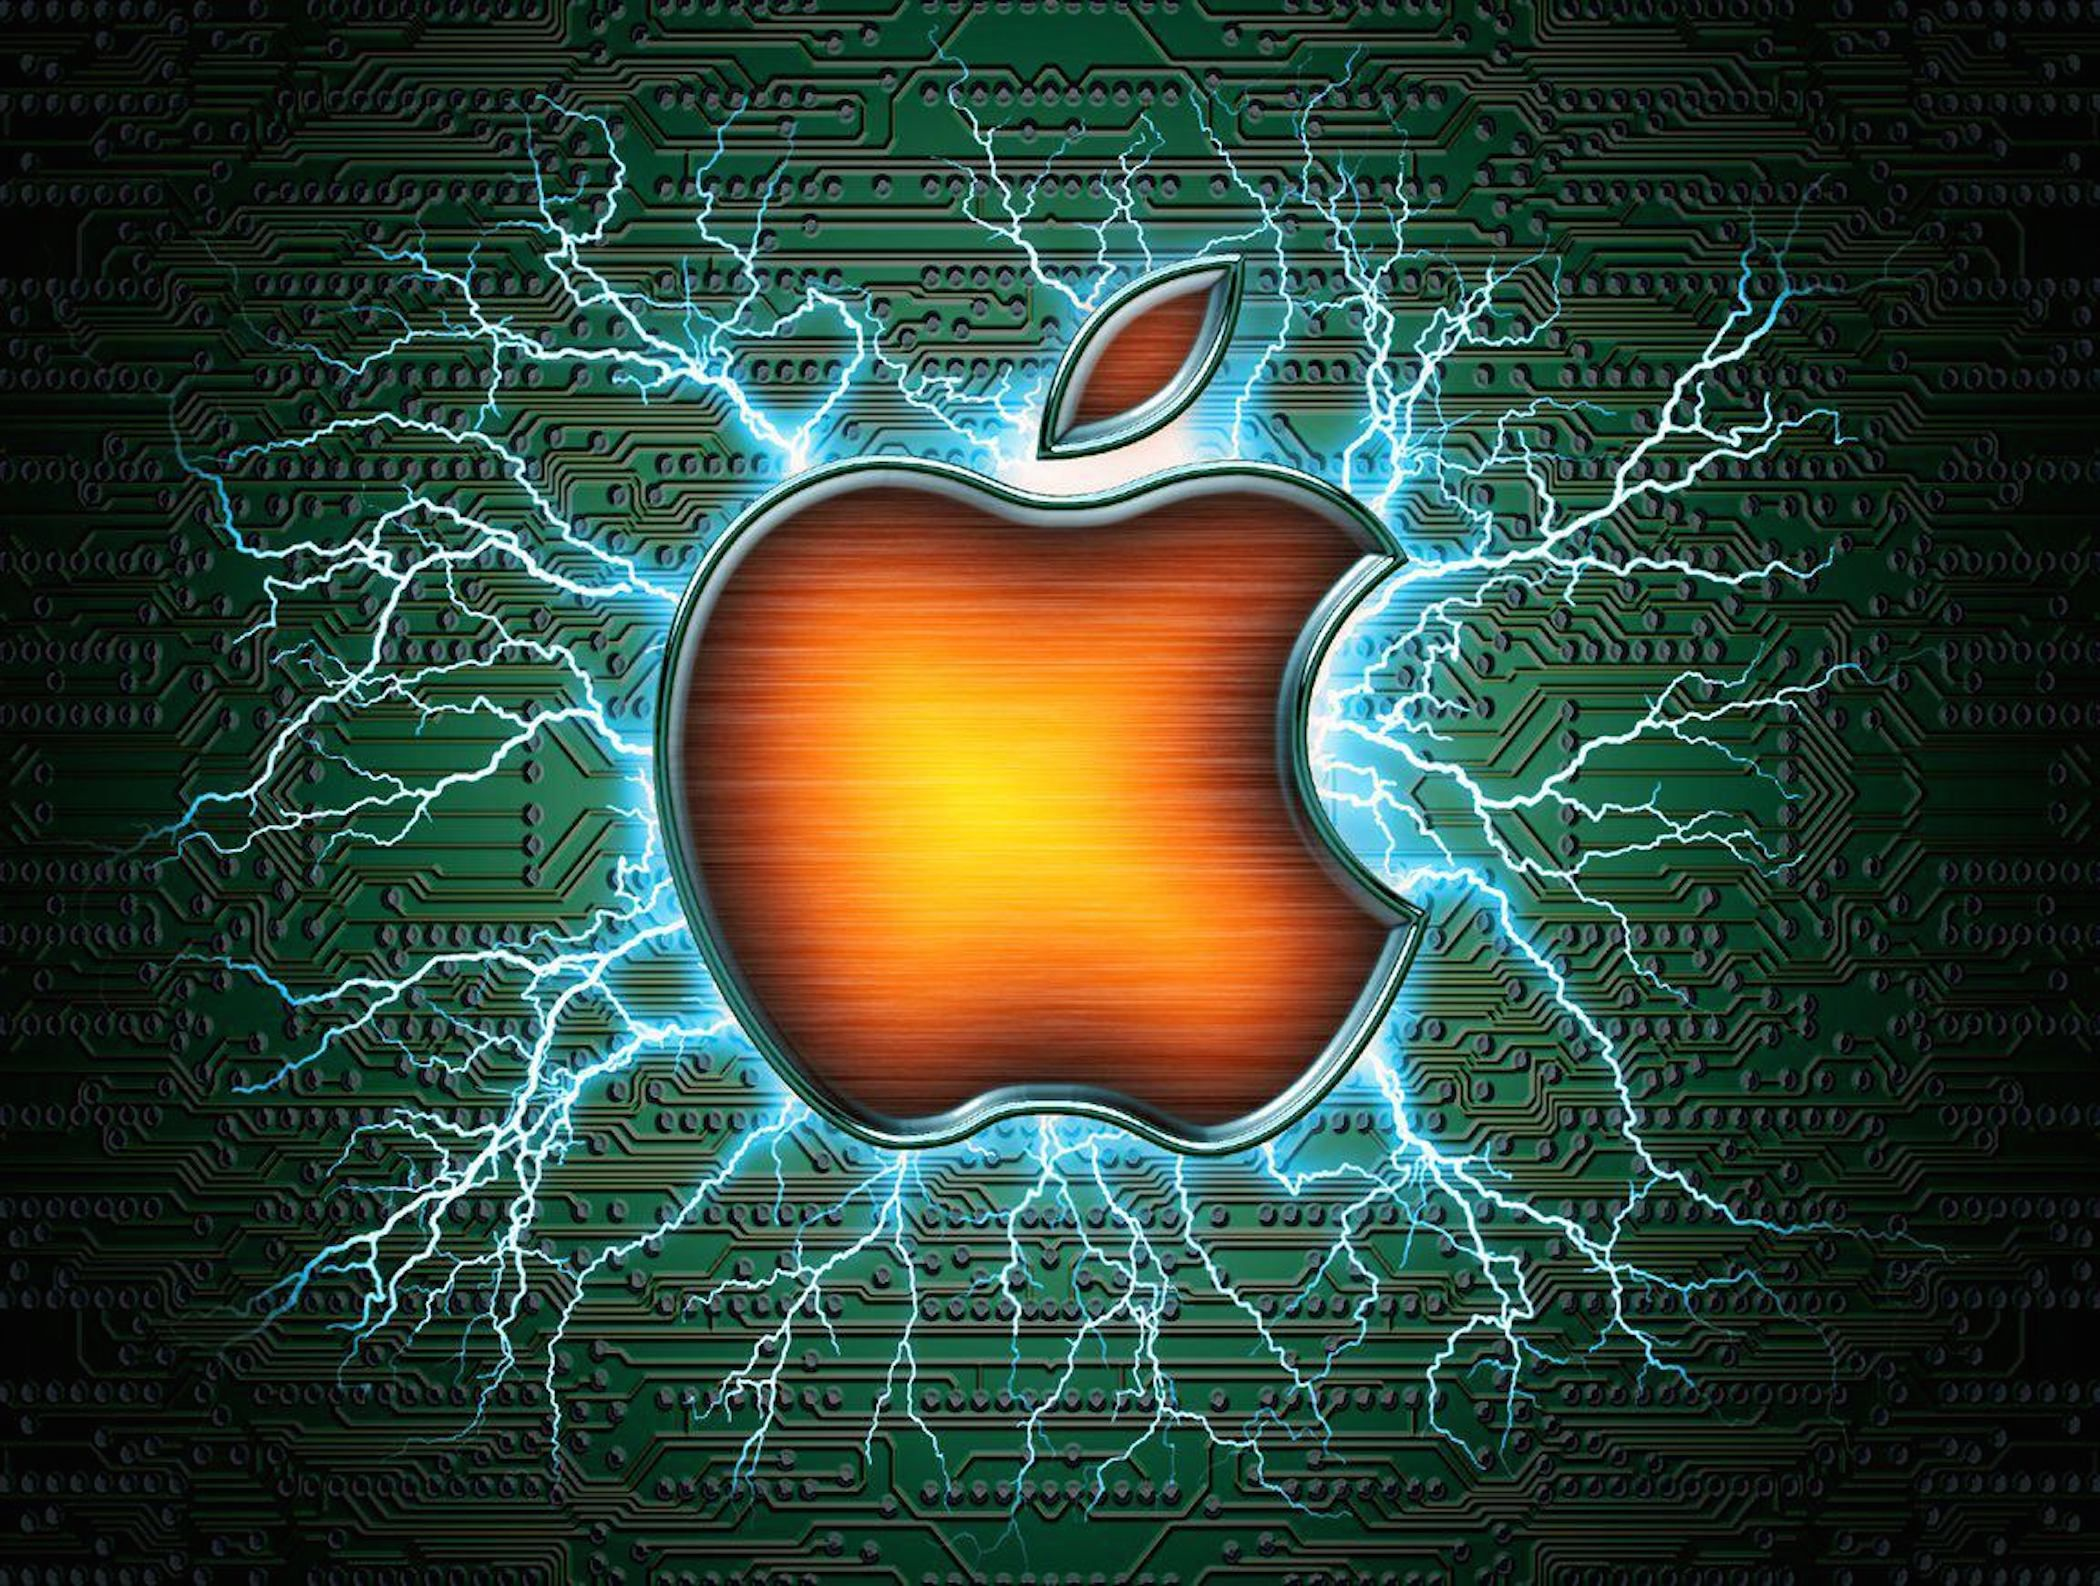 Mac Apple Electric Wallpaper Symbolizing Enthusiasm For The New Iphone